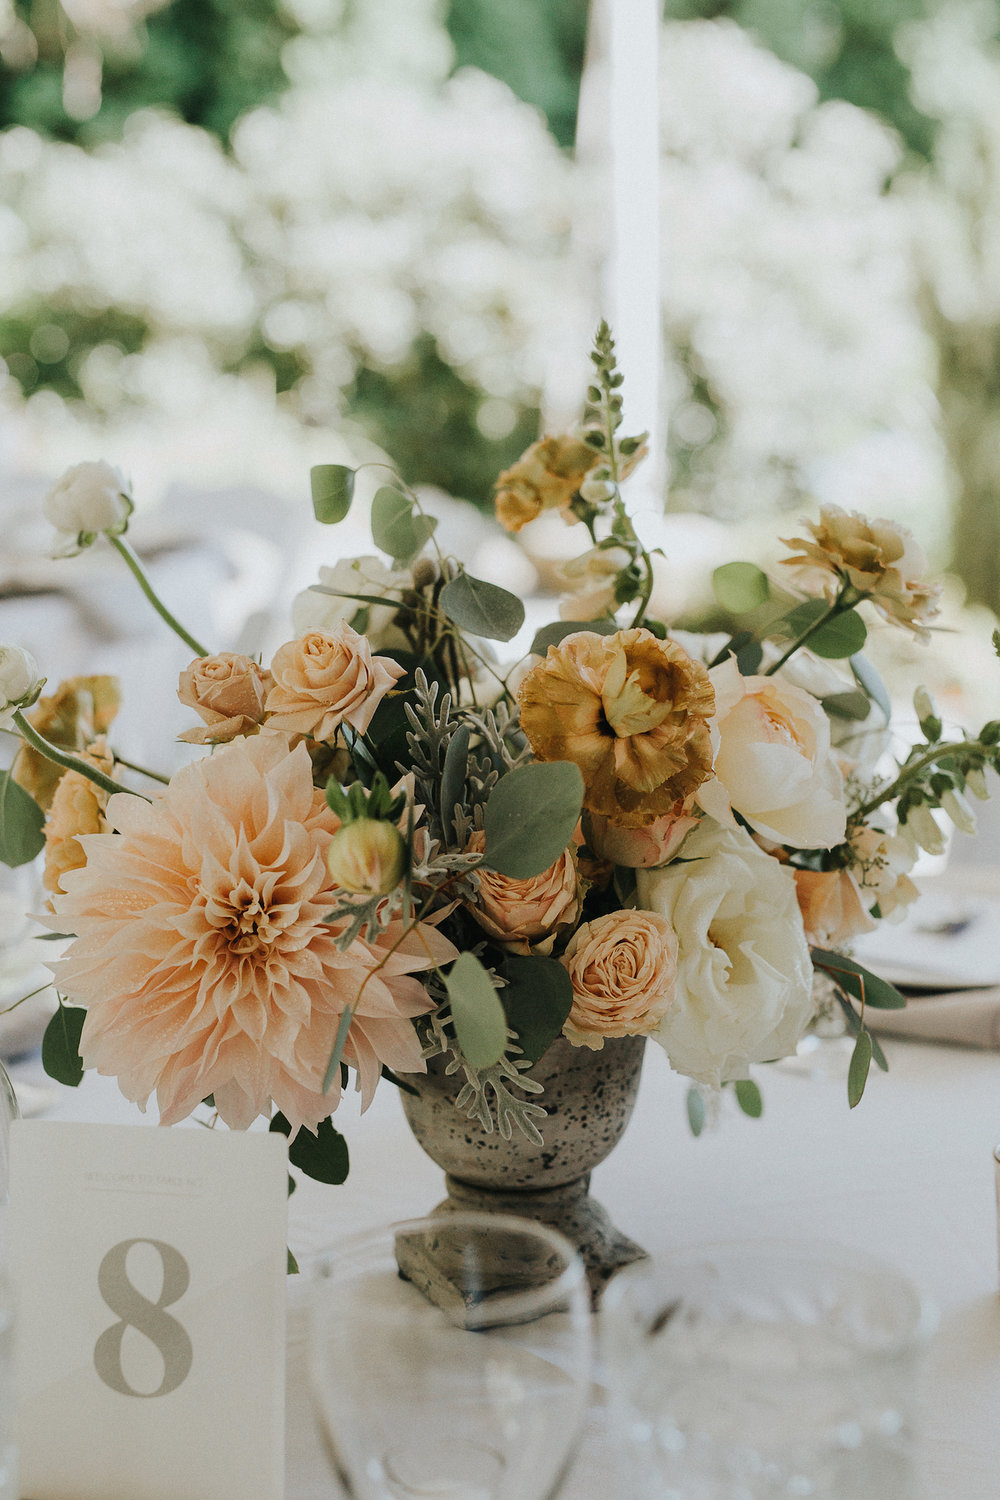 Wild Bloom Floral - Rachel Birkhofer Photography - Jessica and Phil - Real Wedding - Seattle 33.jpeg